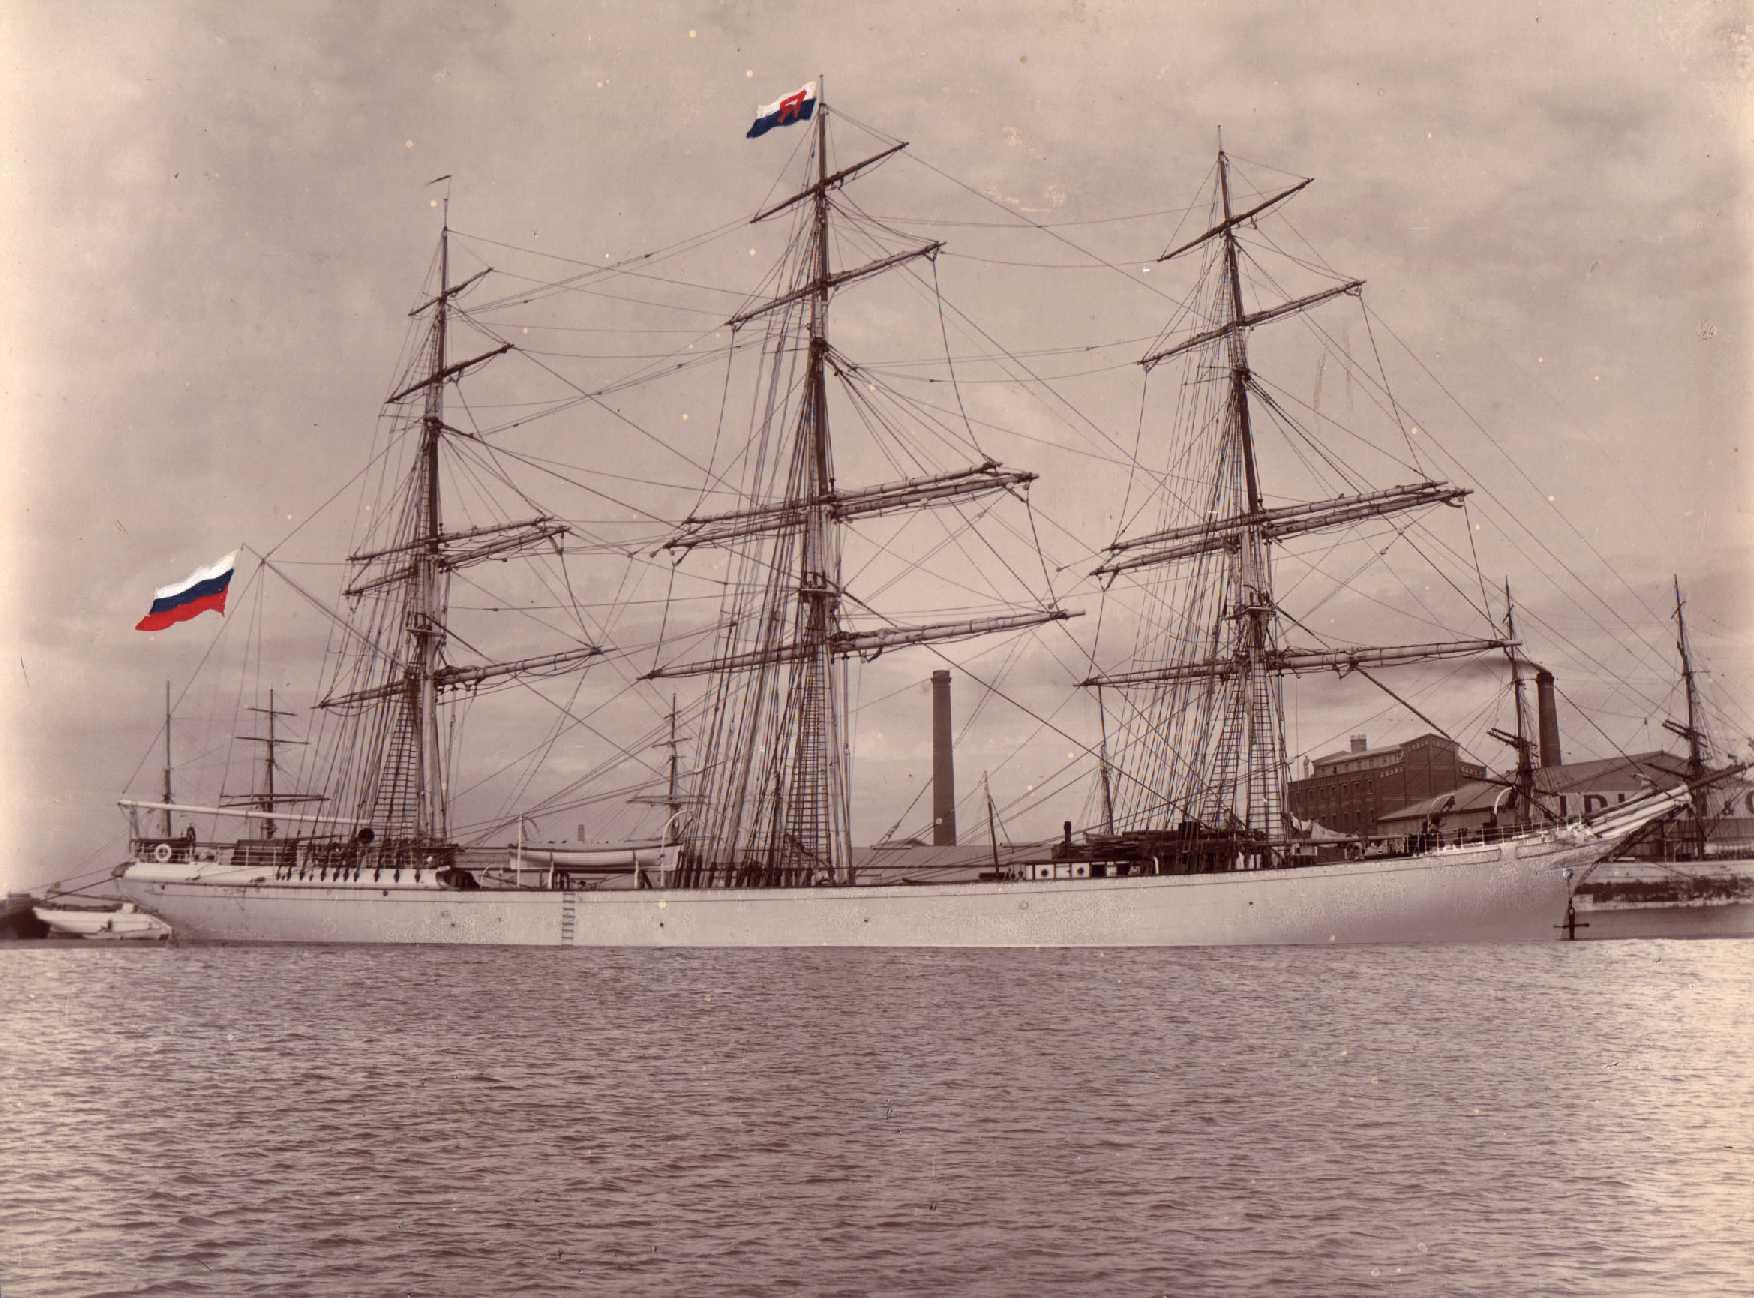 """Barque, """"Yarkand"""", built in 1877 at Barrow by Barrow Shipbuilding Co.  Owned by  E Bates & Sons. Official Number:  76483 Tonnage:  1352 gross Dimensions:  length 222', breadth 37', draught 22' Port Of Registry:  Liverpool"""